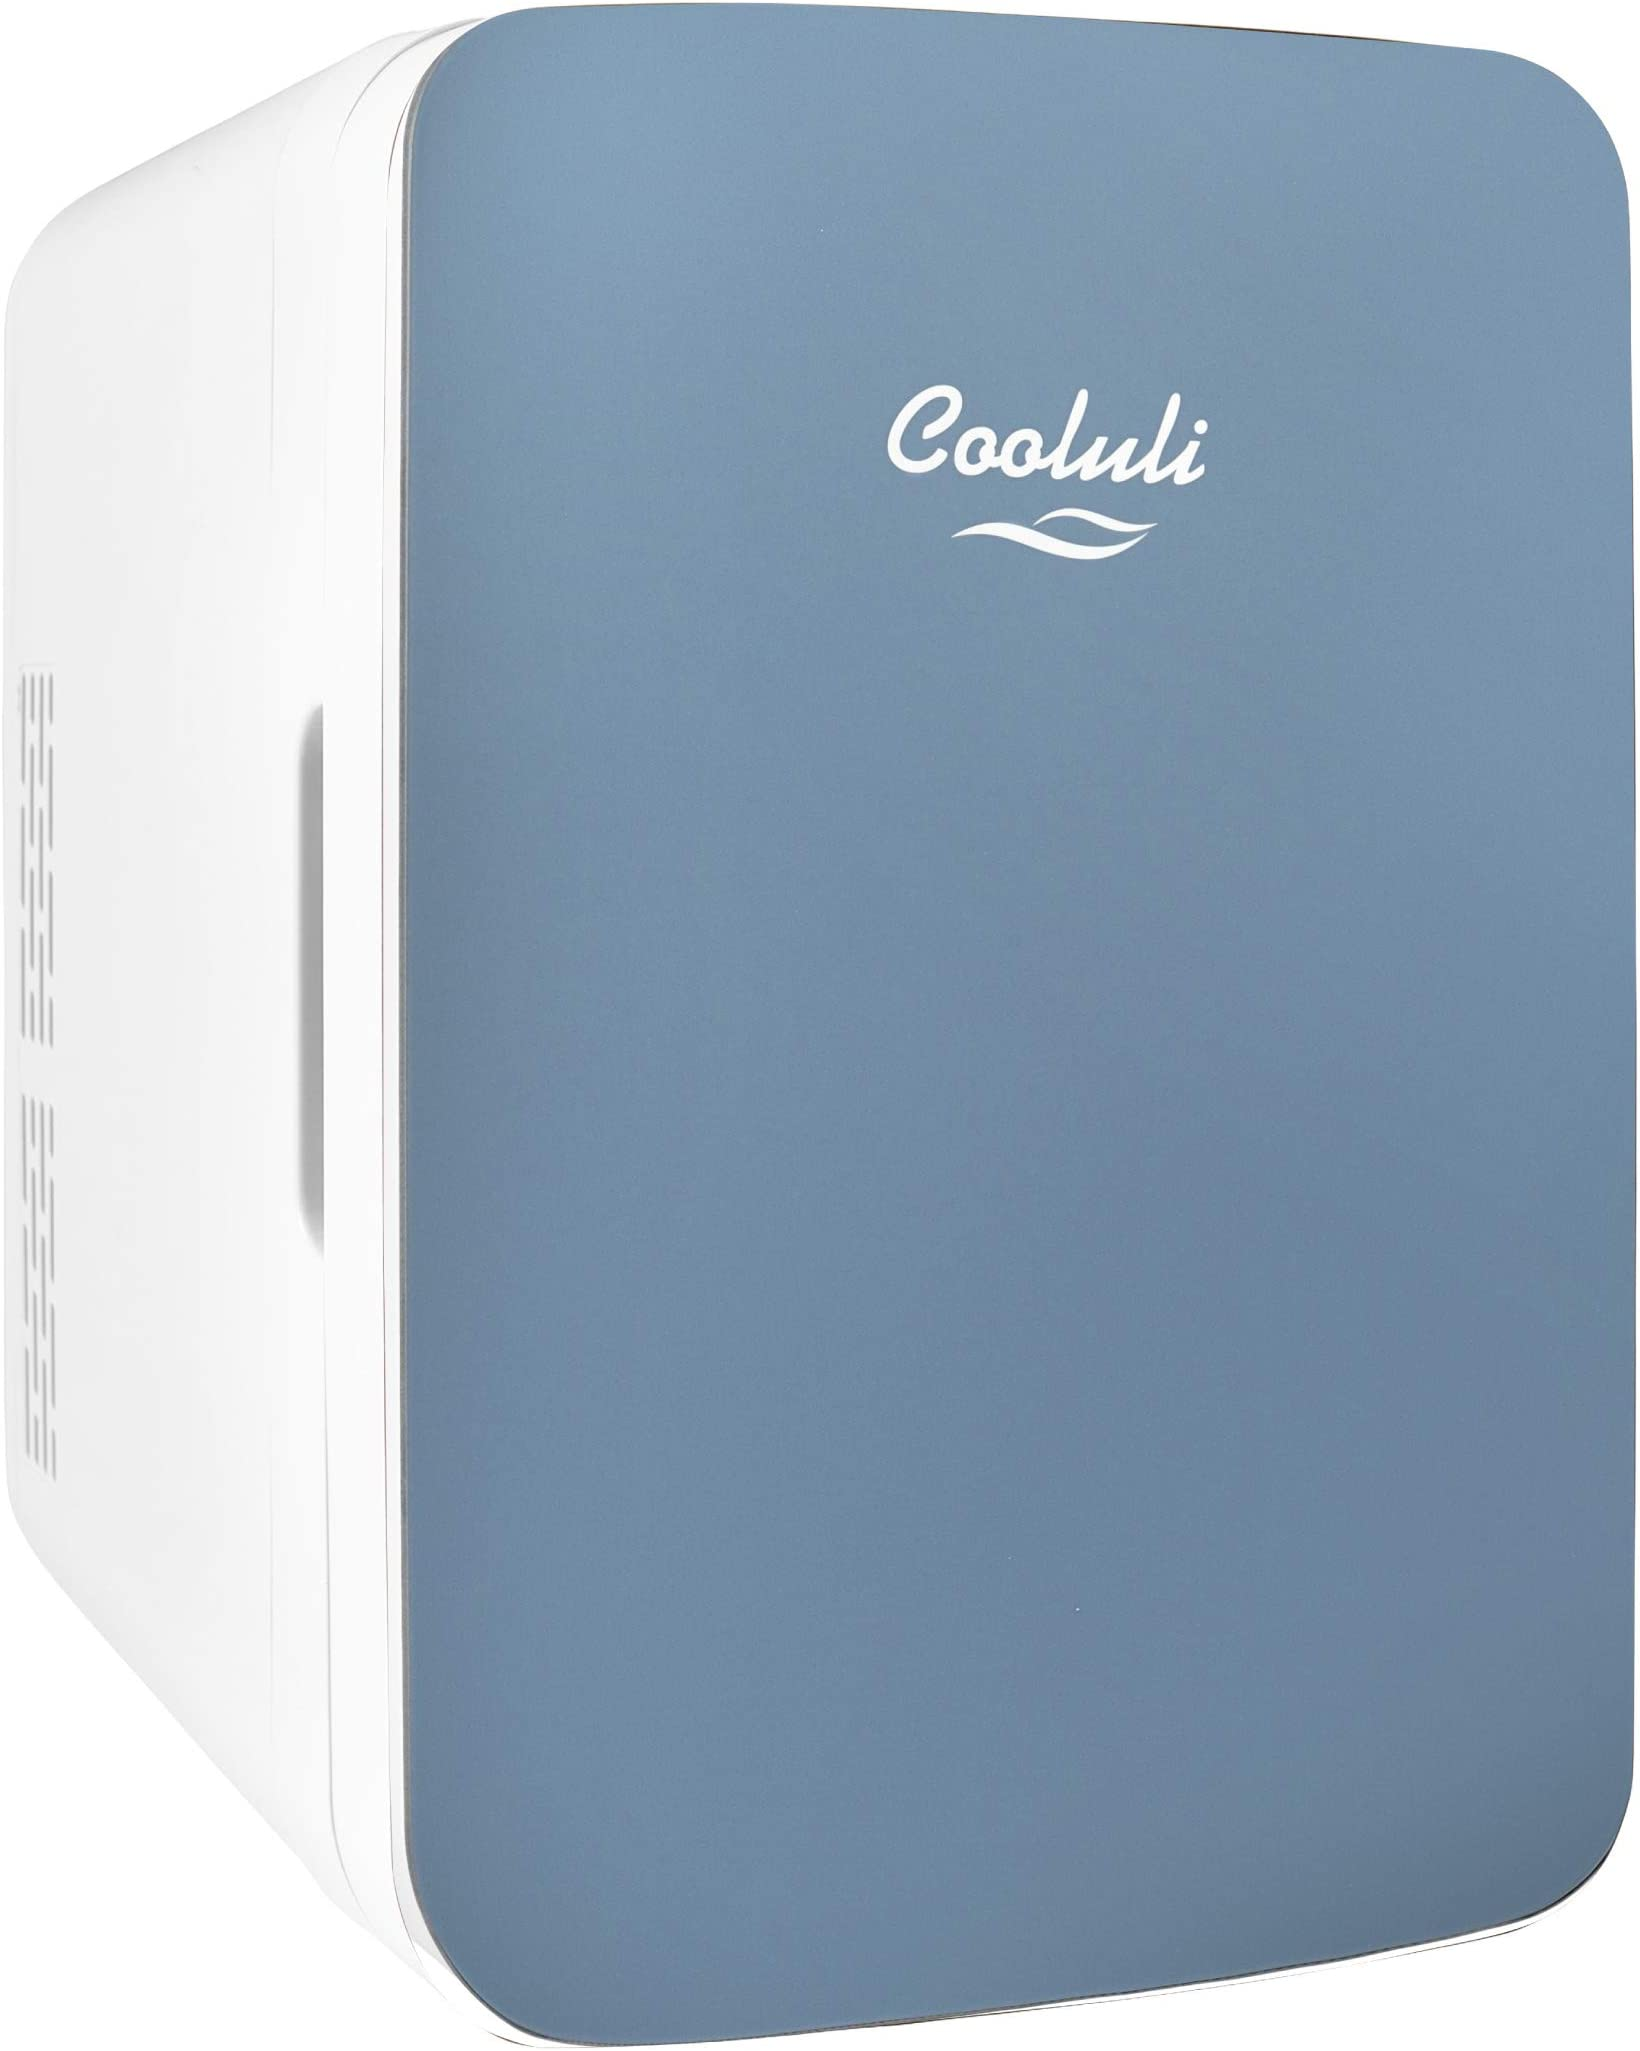 Cooluli Infinity Blue 40 Liter Compact Portable Cooler Warmer Mini Fridge  for Bedroom, Office, Dorm, Car   Great for Skincare & Cosmetics ...